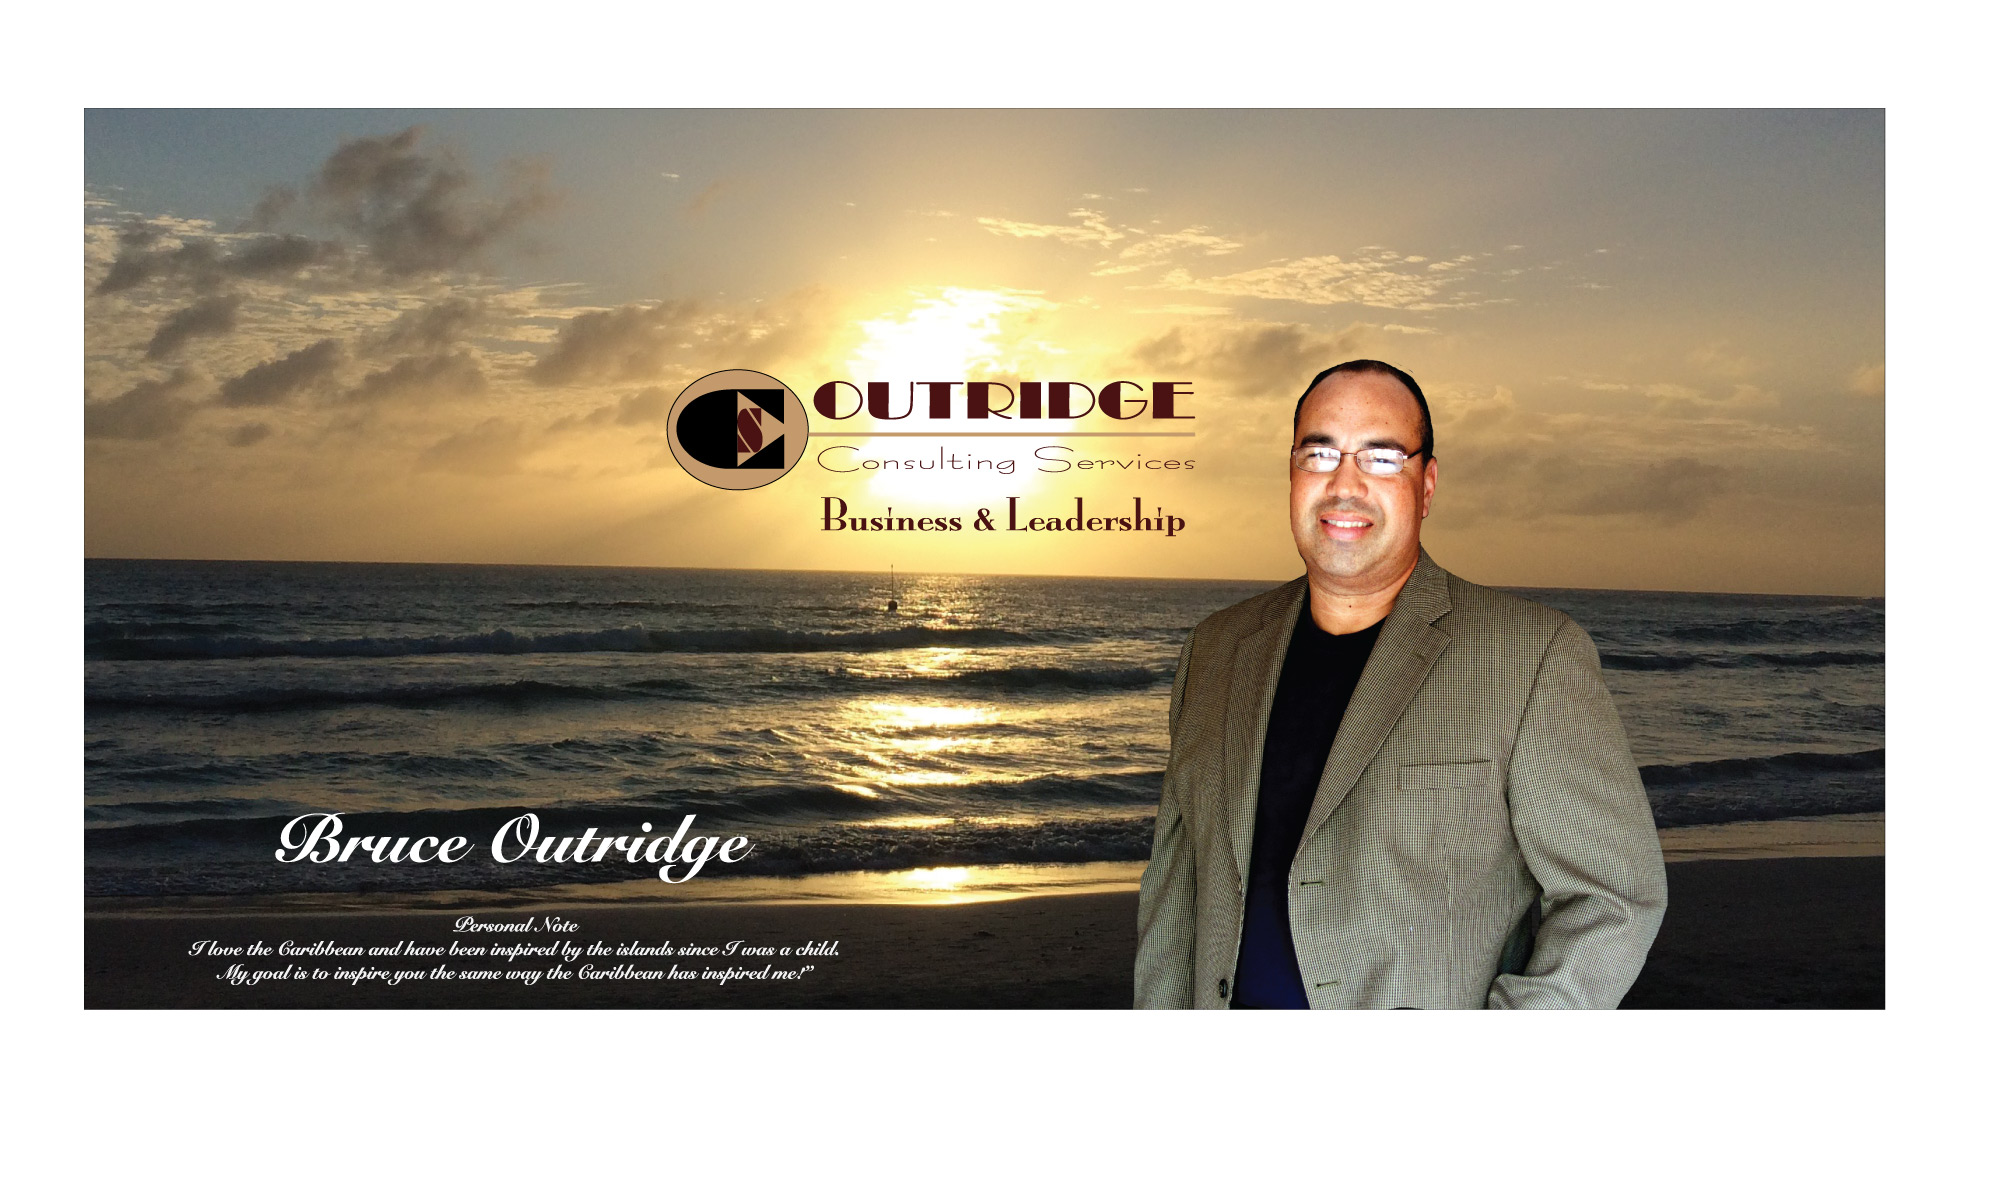 About Bruce Outridge